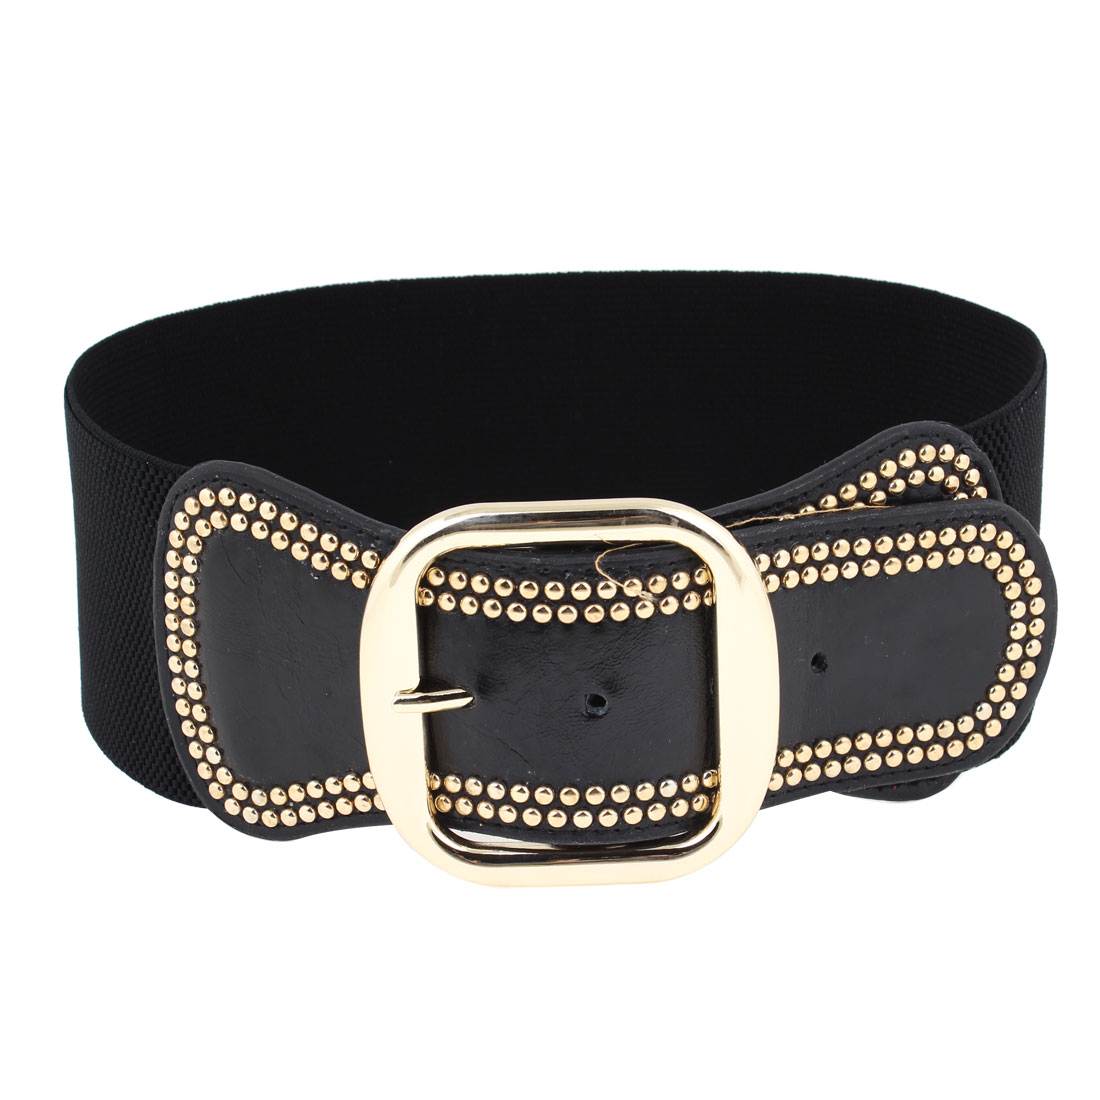 Lady Black Stretchy Textured Band Single Pin Buckle Cinch Belt